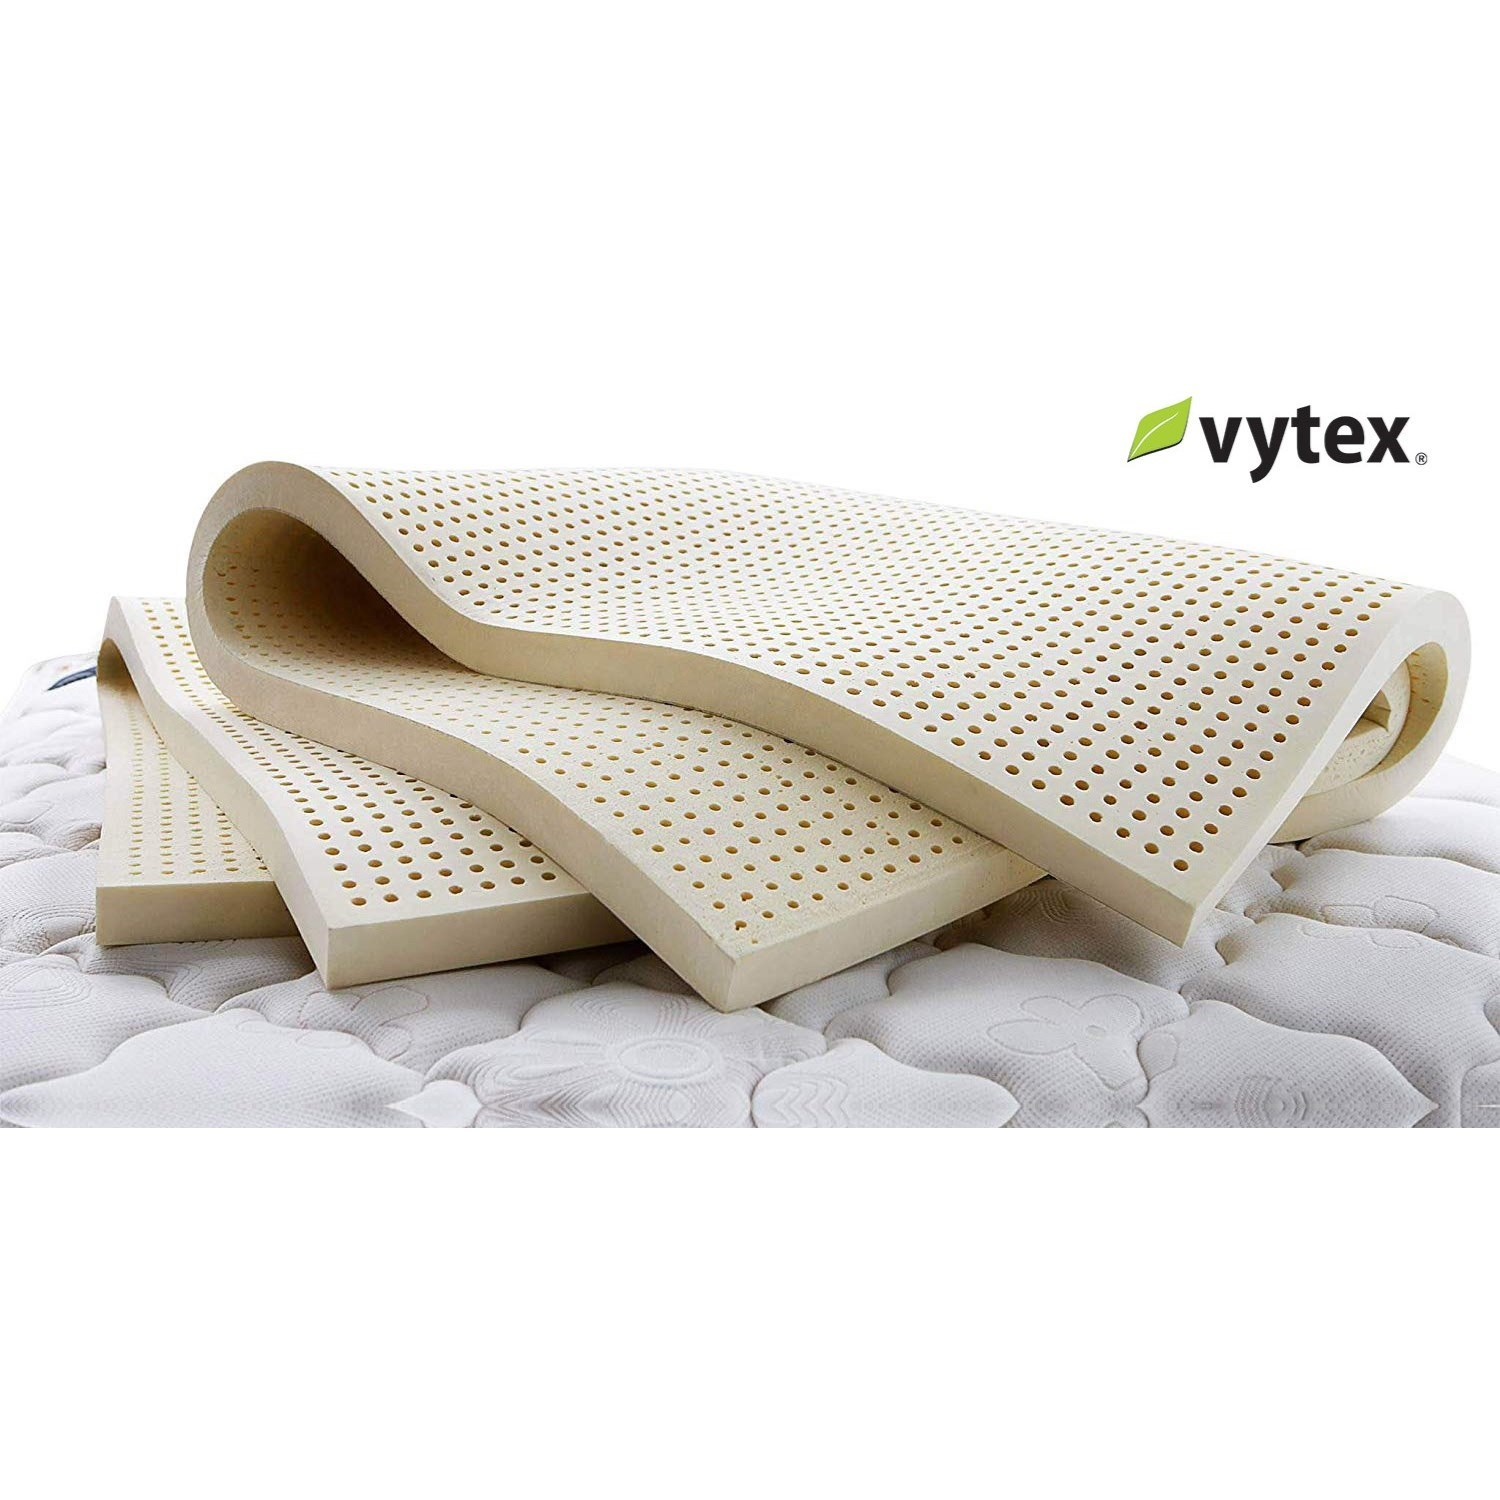 "Vytex Mattress Toppers - Soft Full 2"" Soft Latex Mattress Topper by Vytex at Rotmans"